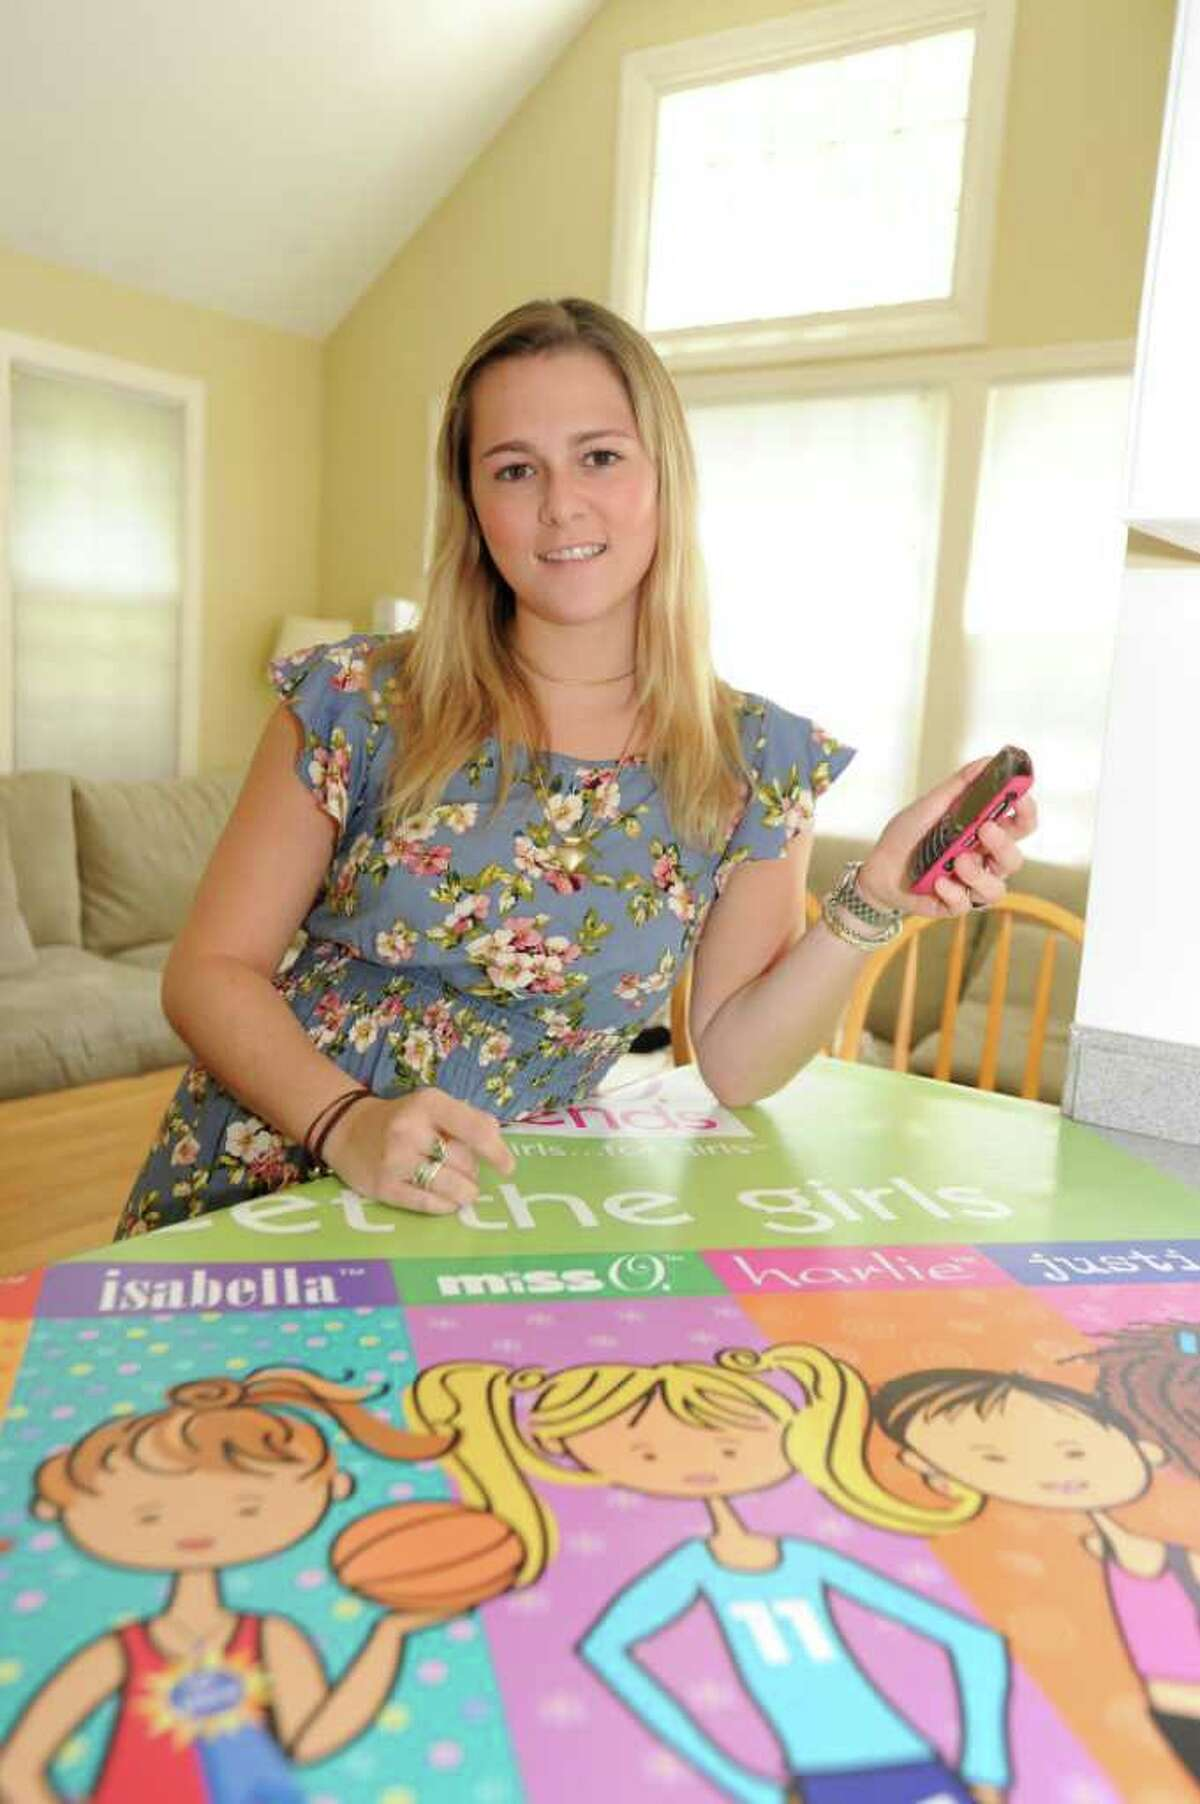 Juliette Brindak, 21, co-founder of missoandfriends.com, a viral website that started up in 2005, at home. Julie, who recently took the helm as CEO, sits with her Blackberry in the family room, on Monday, August 2, 2010.